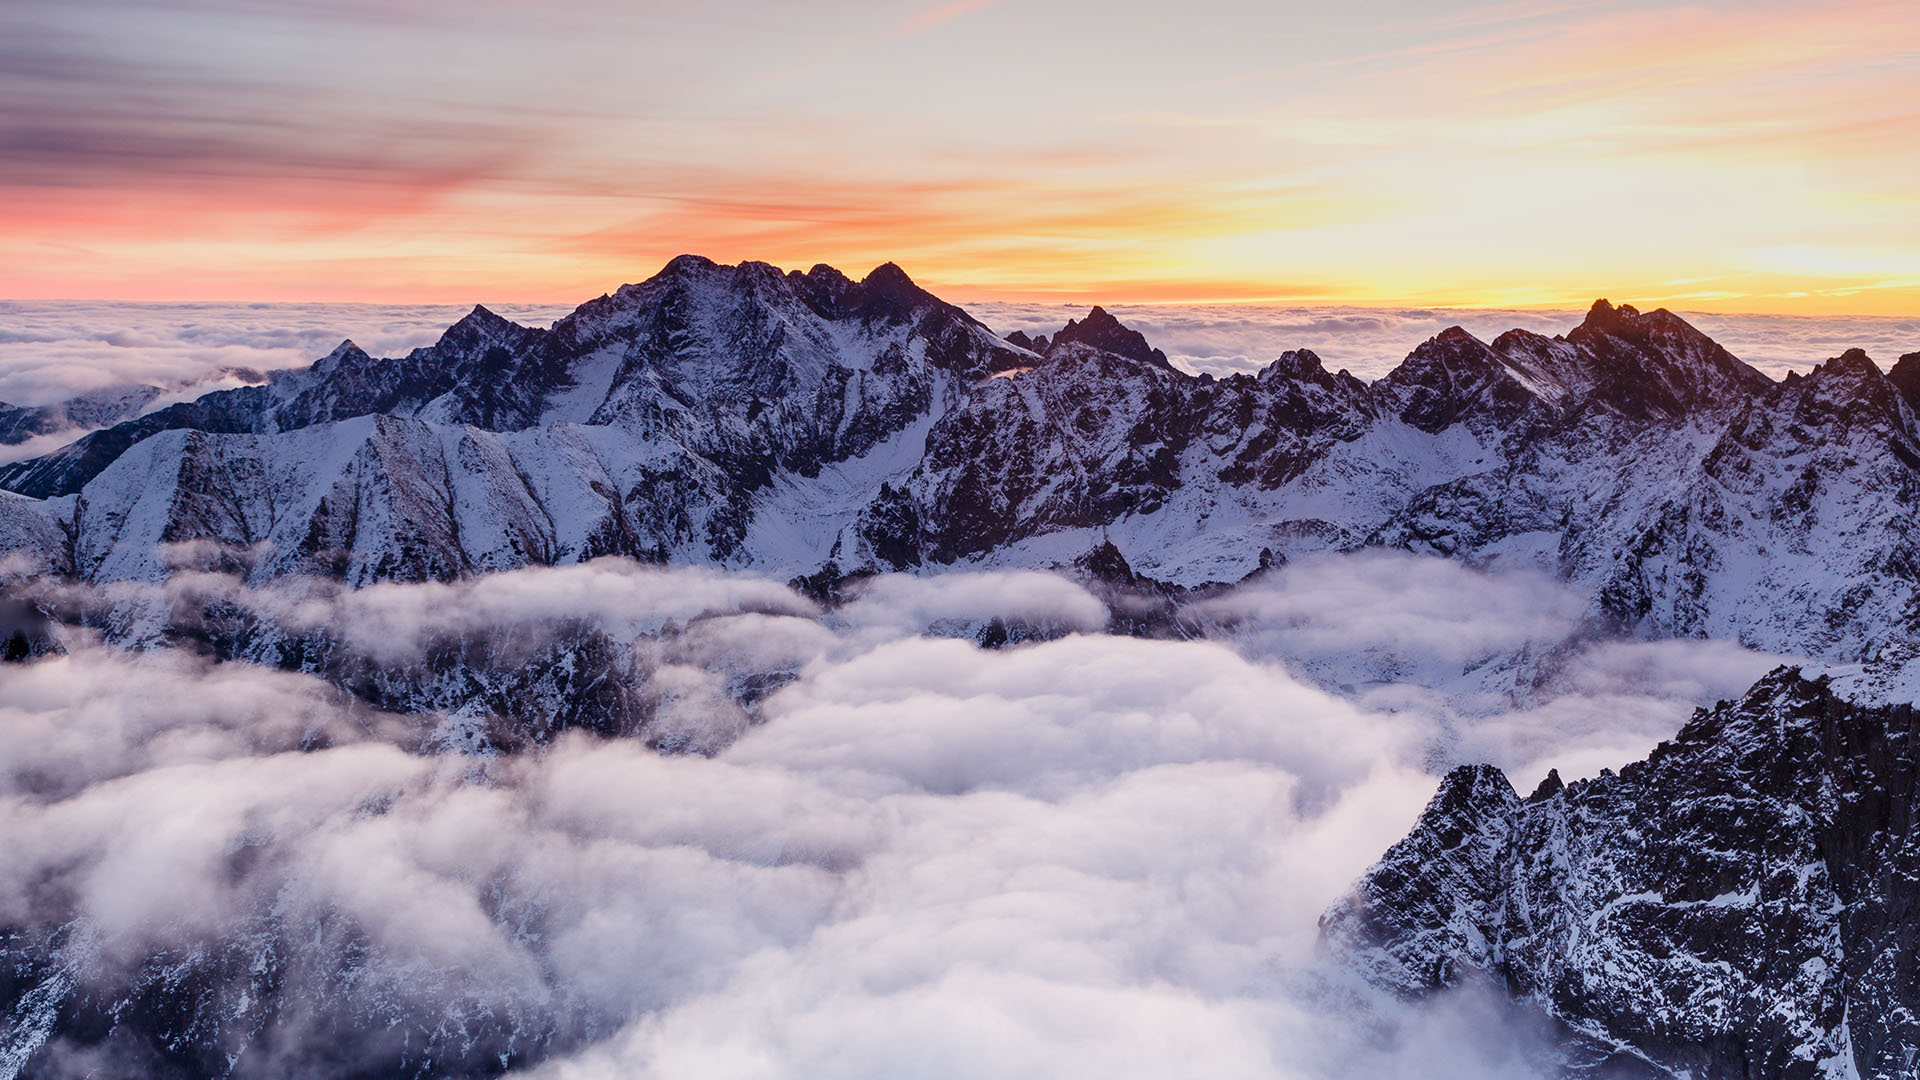 Mountain Range with Snow and Cloud